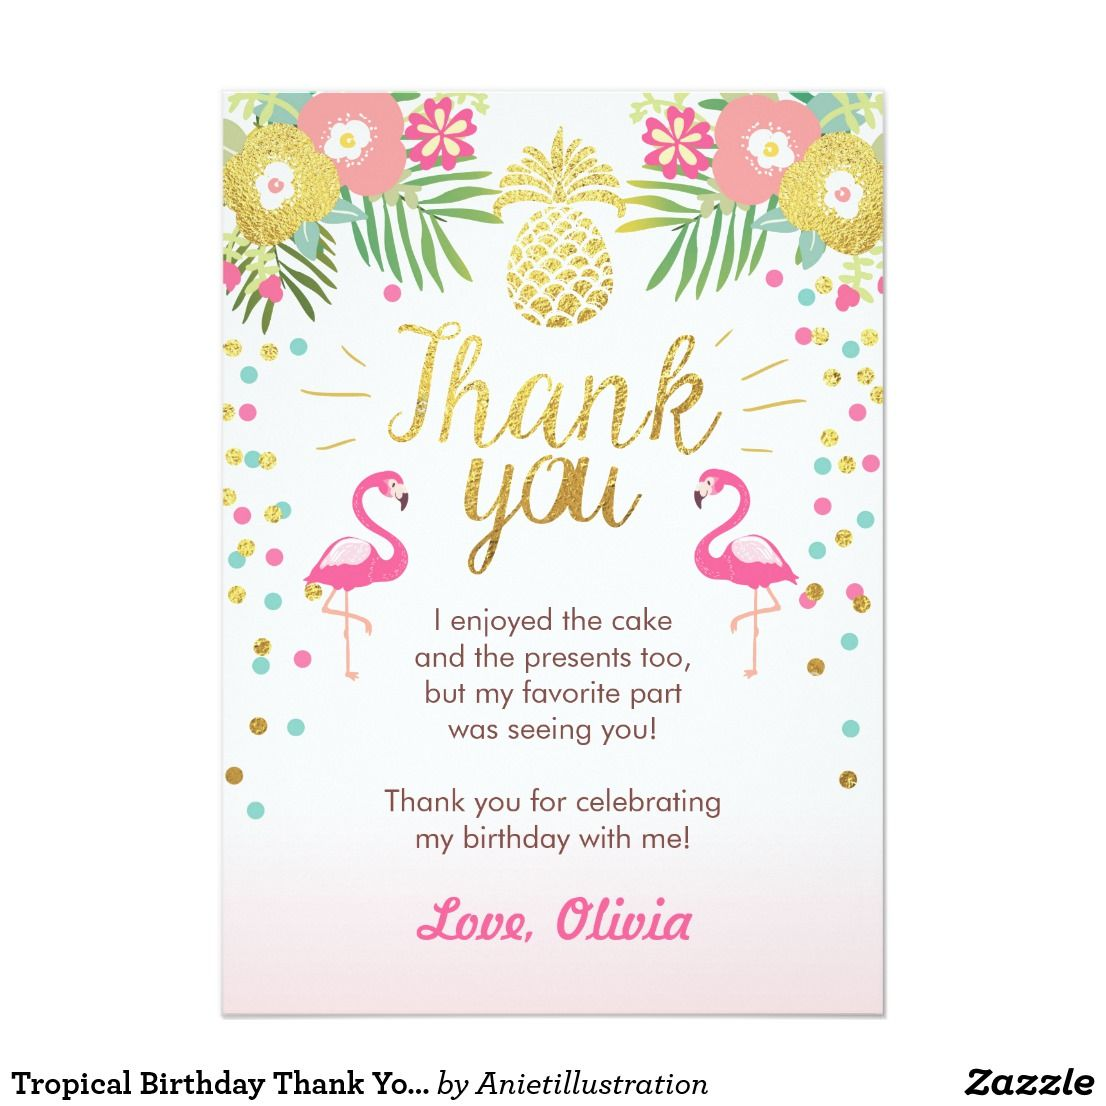 Tropical Birthday Thank You Card Luau Flamingo Zazzle Com Flamingo Party Invitation Flamingo Birthday Invitations Flamingo Pool Parties